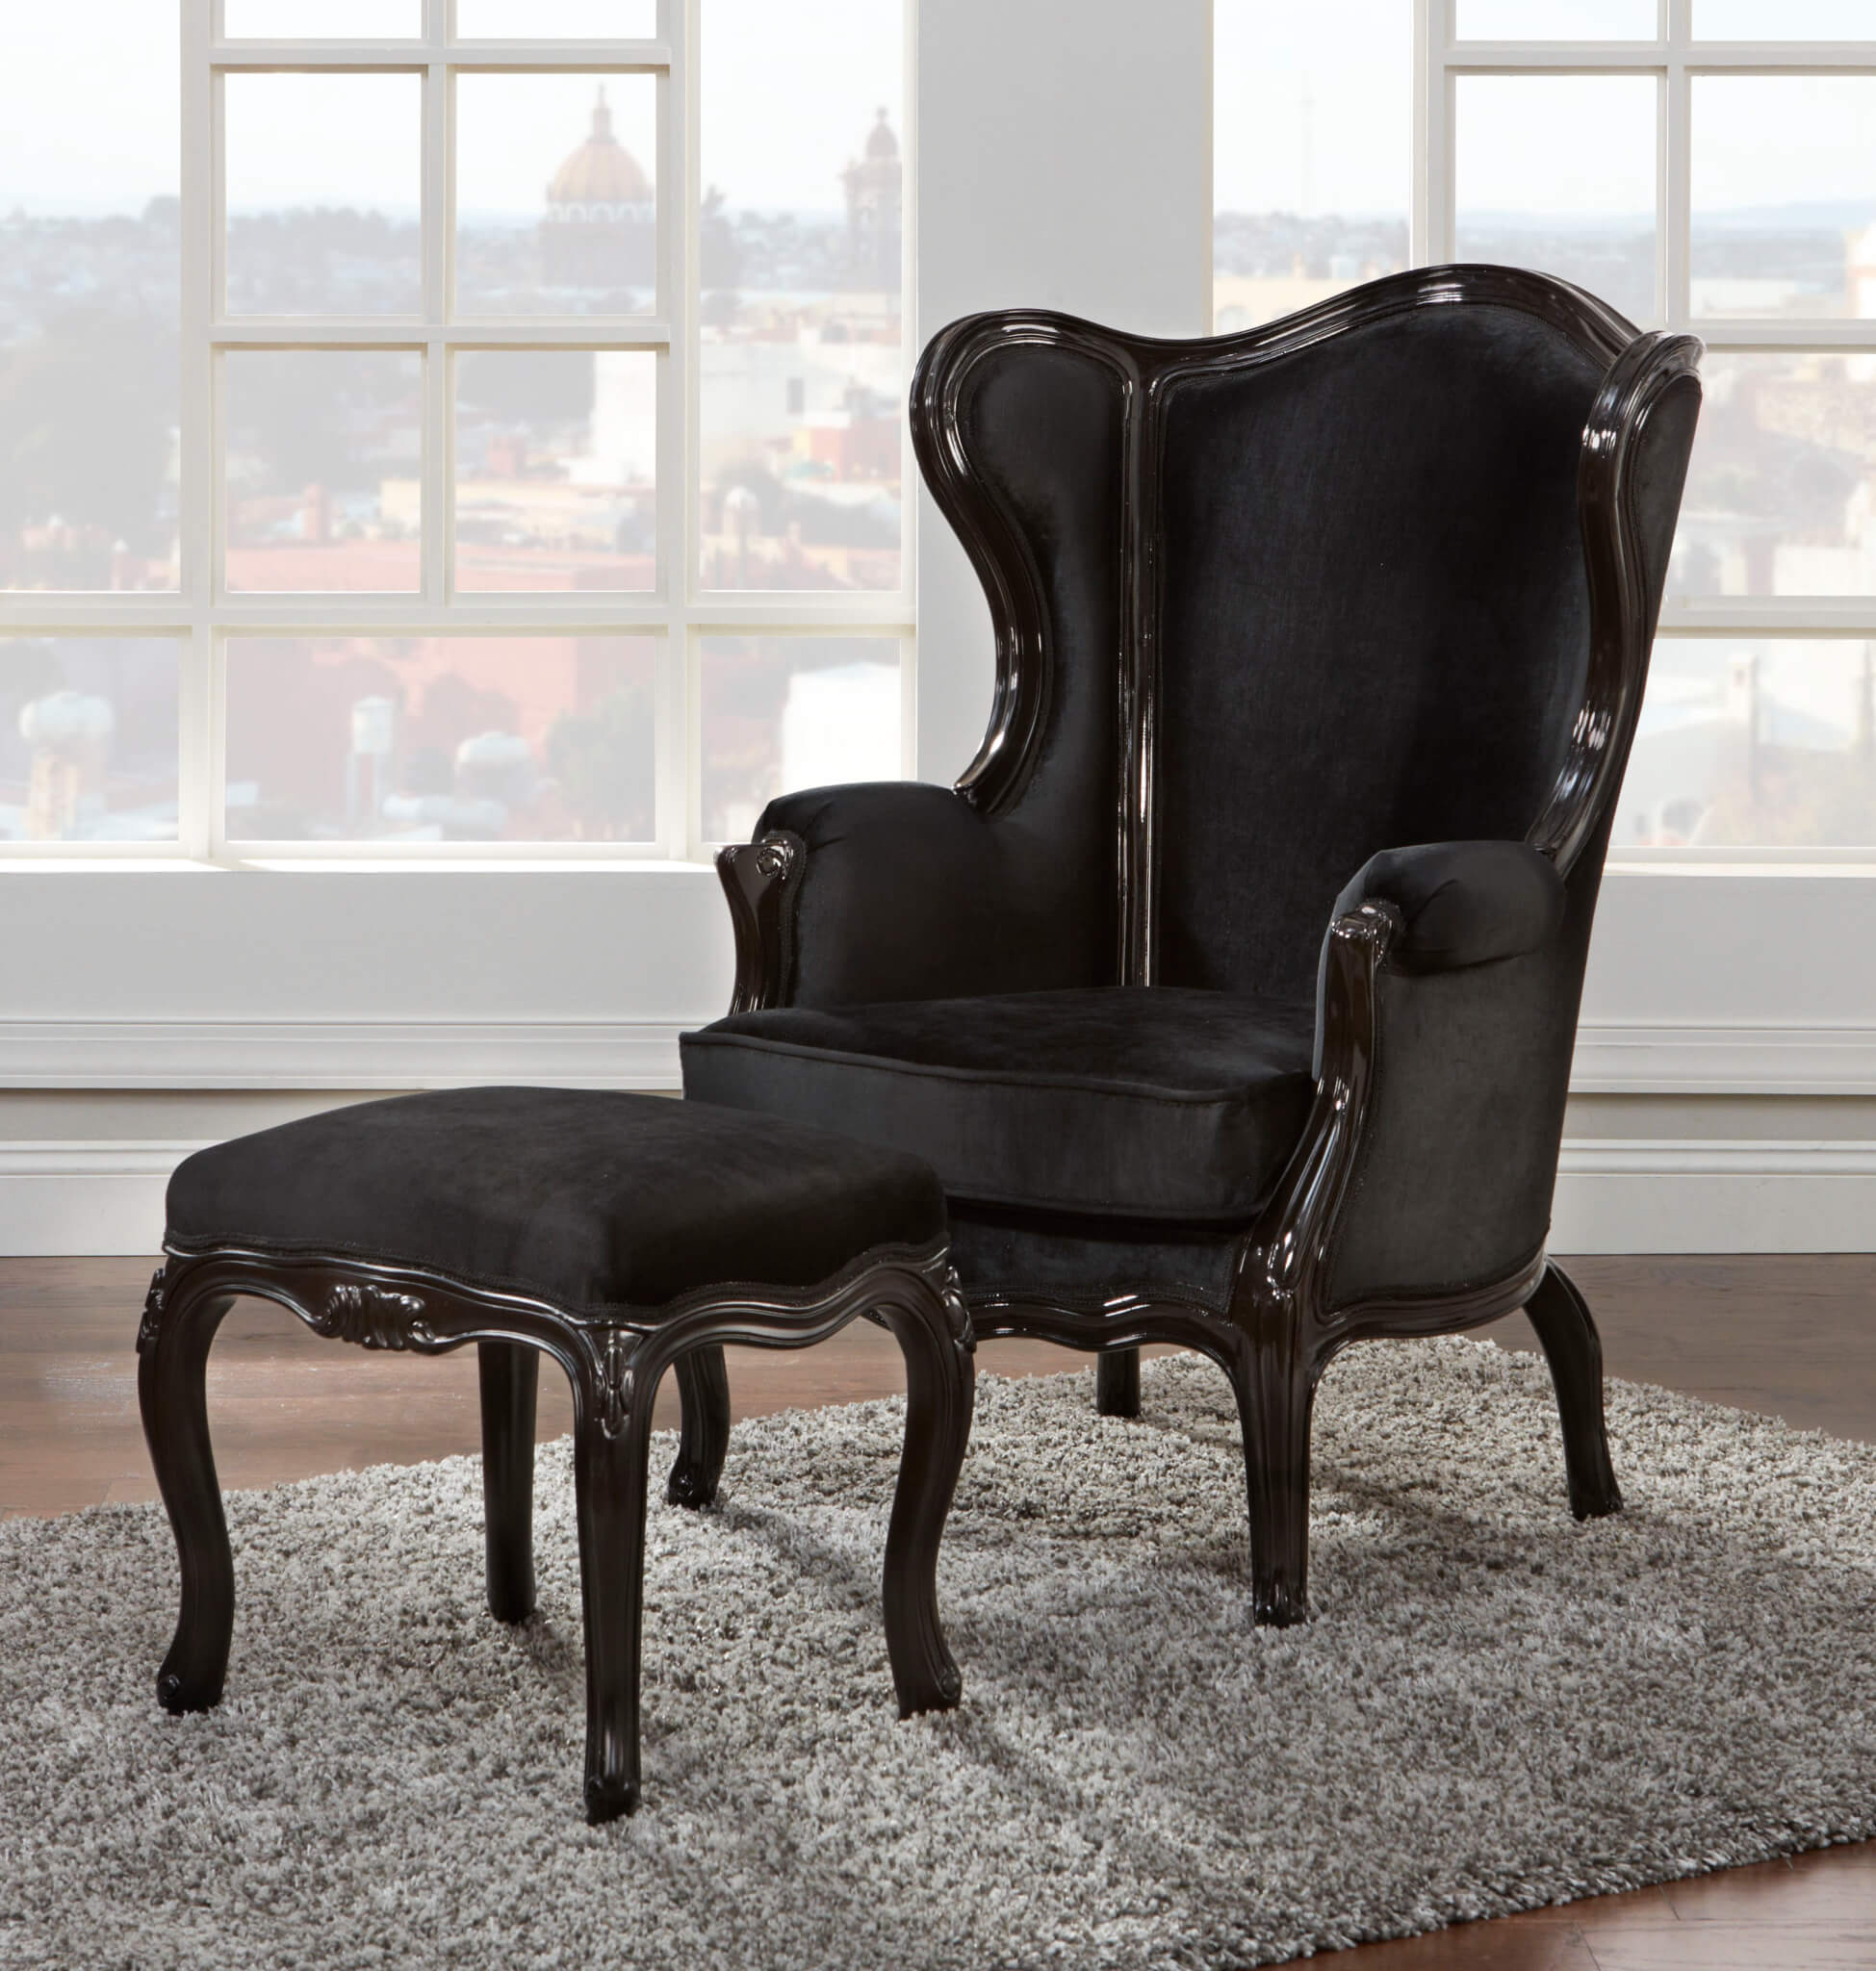 Wing chair with ottoman - Wing Chair And Ottoman